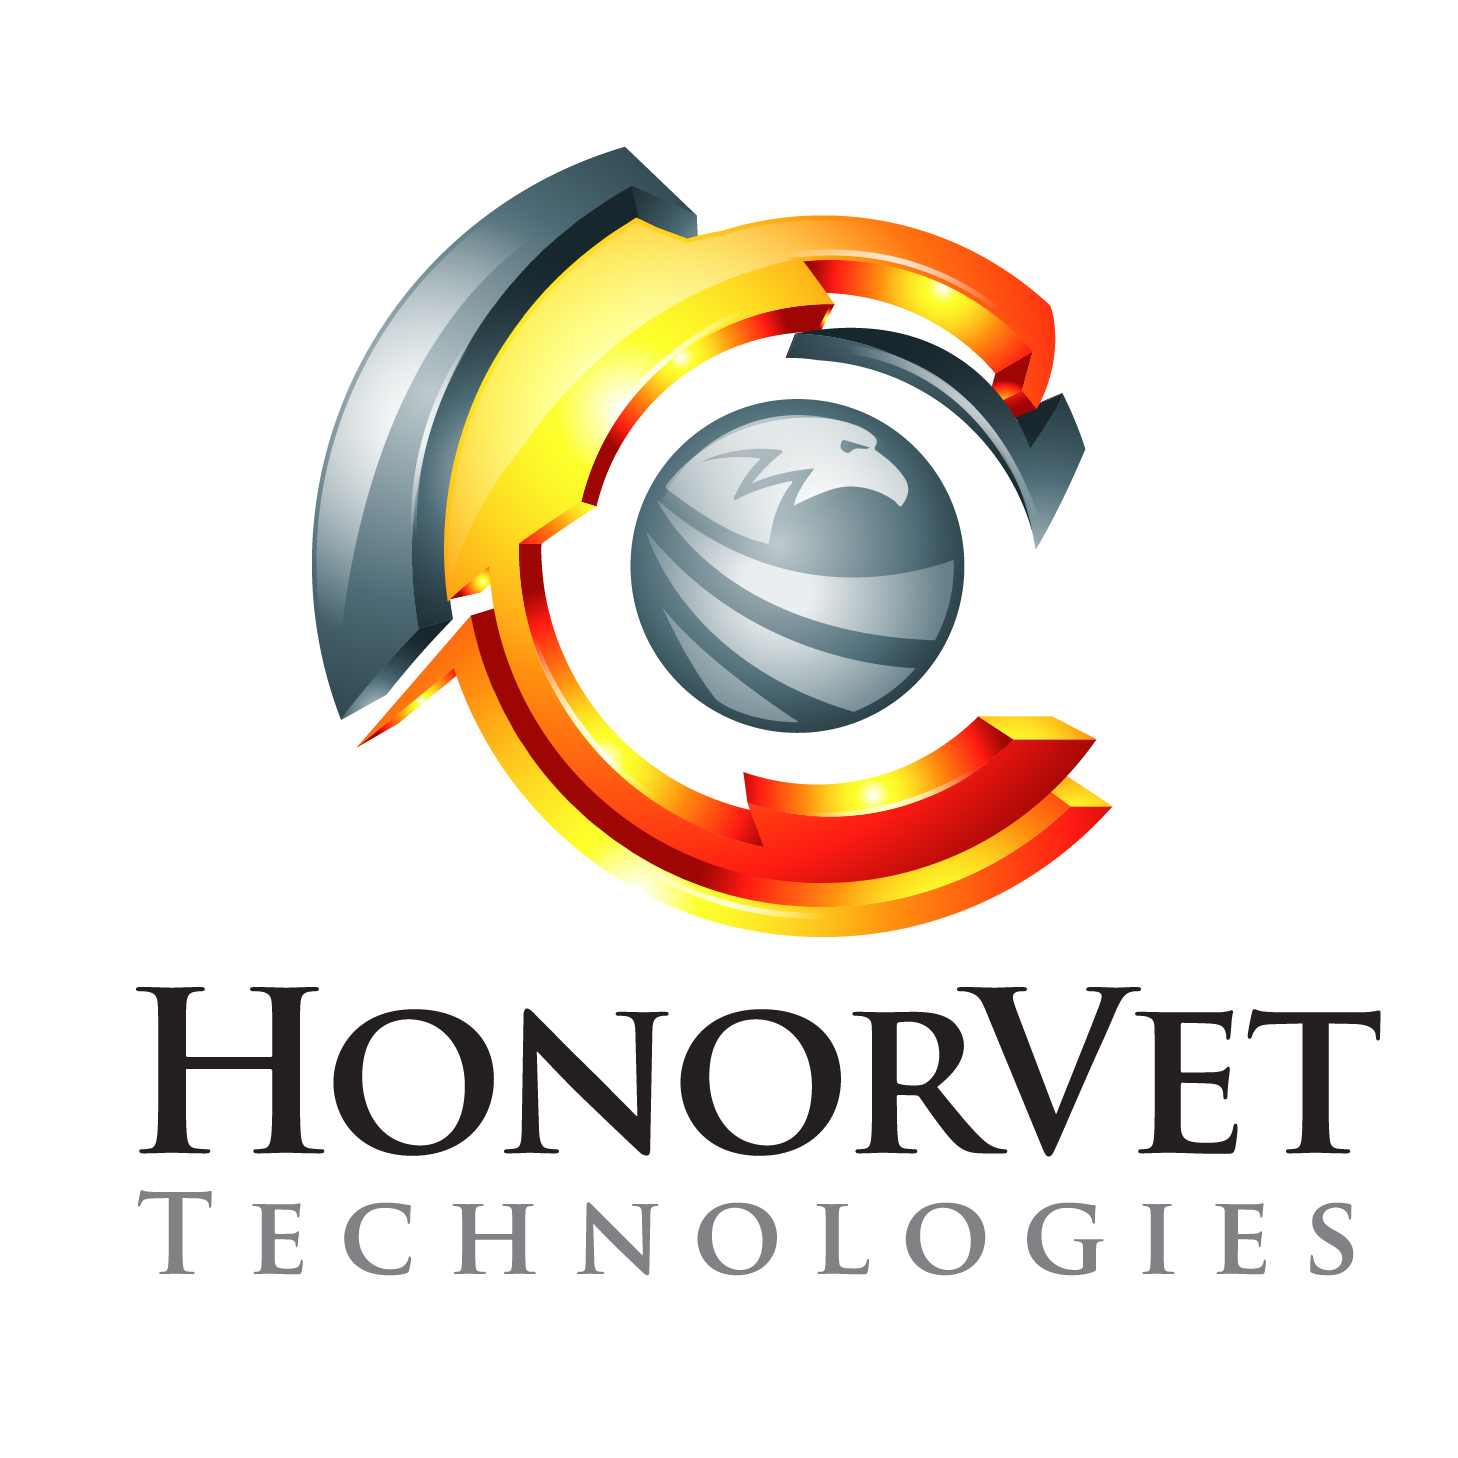 HonorVet Technologies